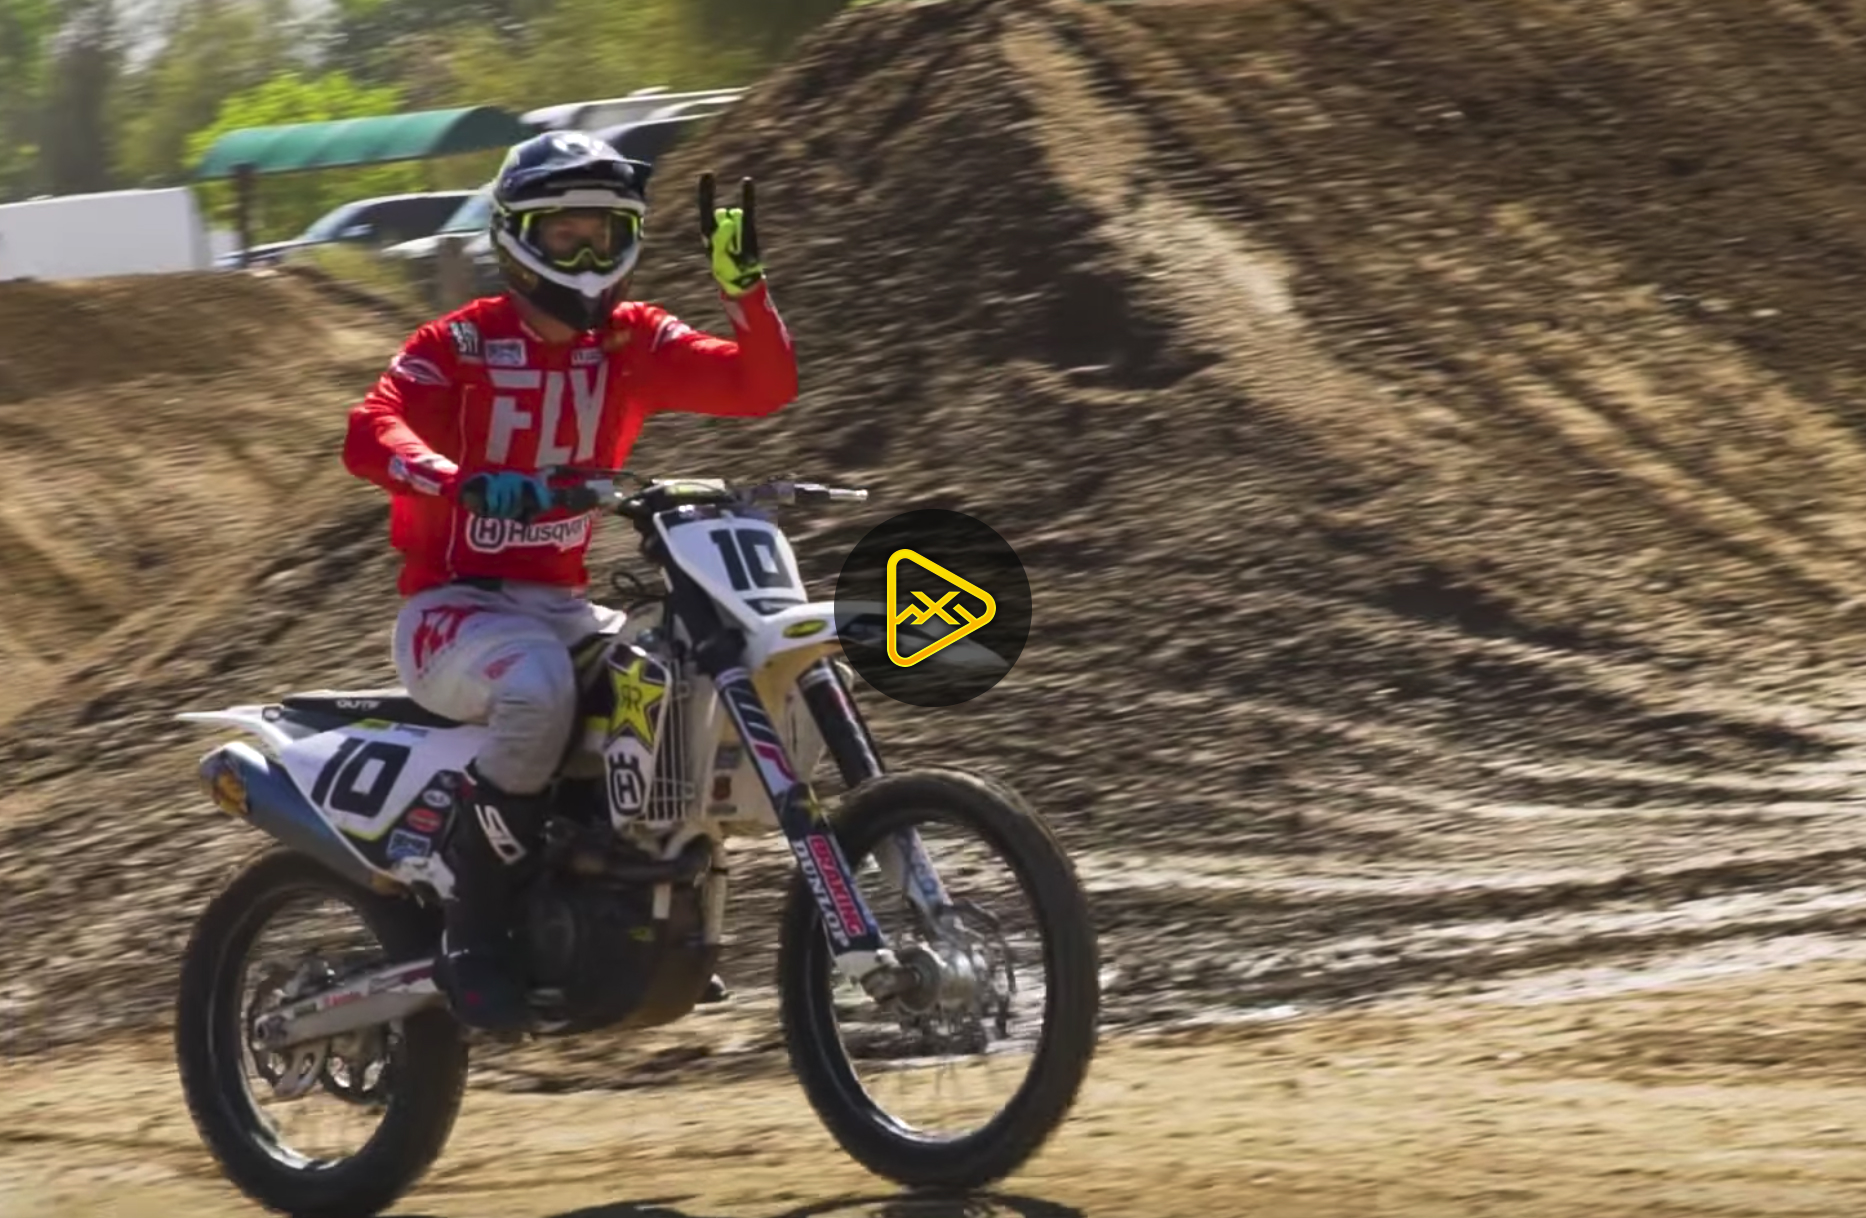 Colton Haaker's 5 Day Red Bull Straight Rhythm Vlog